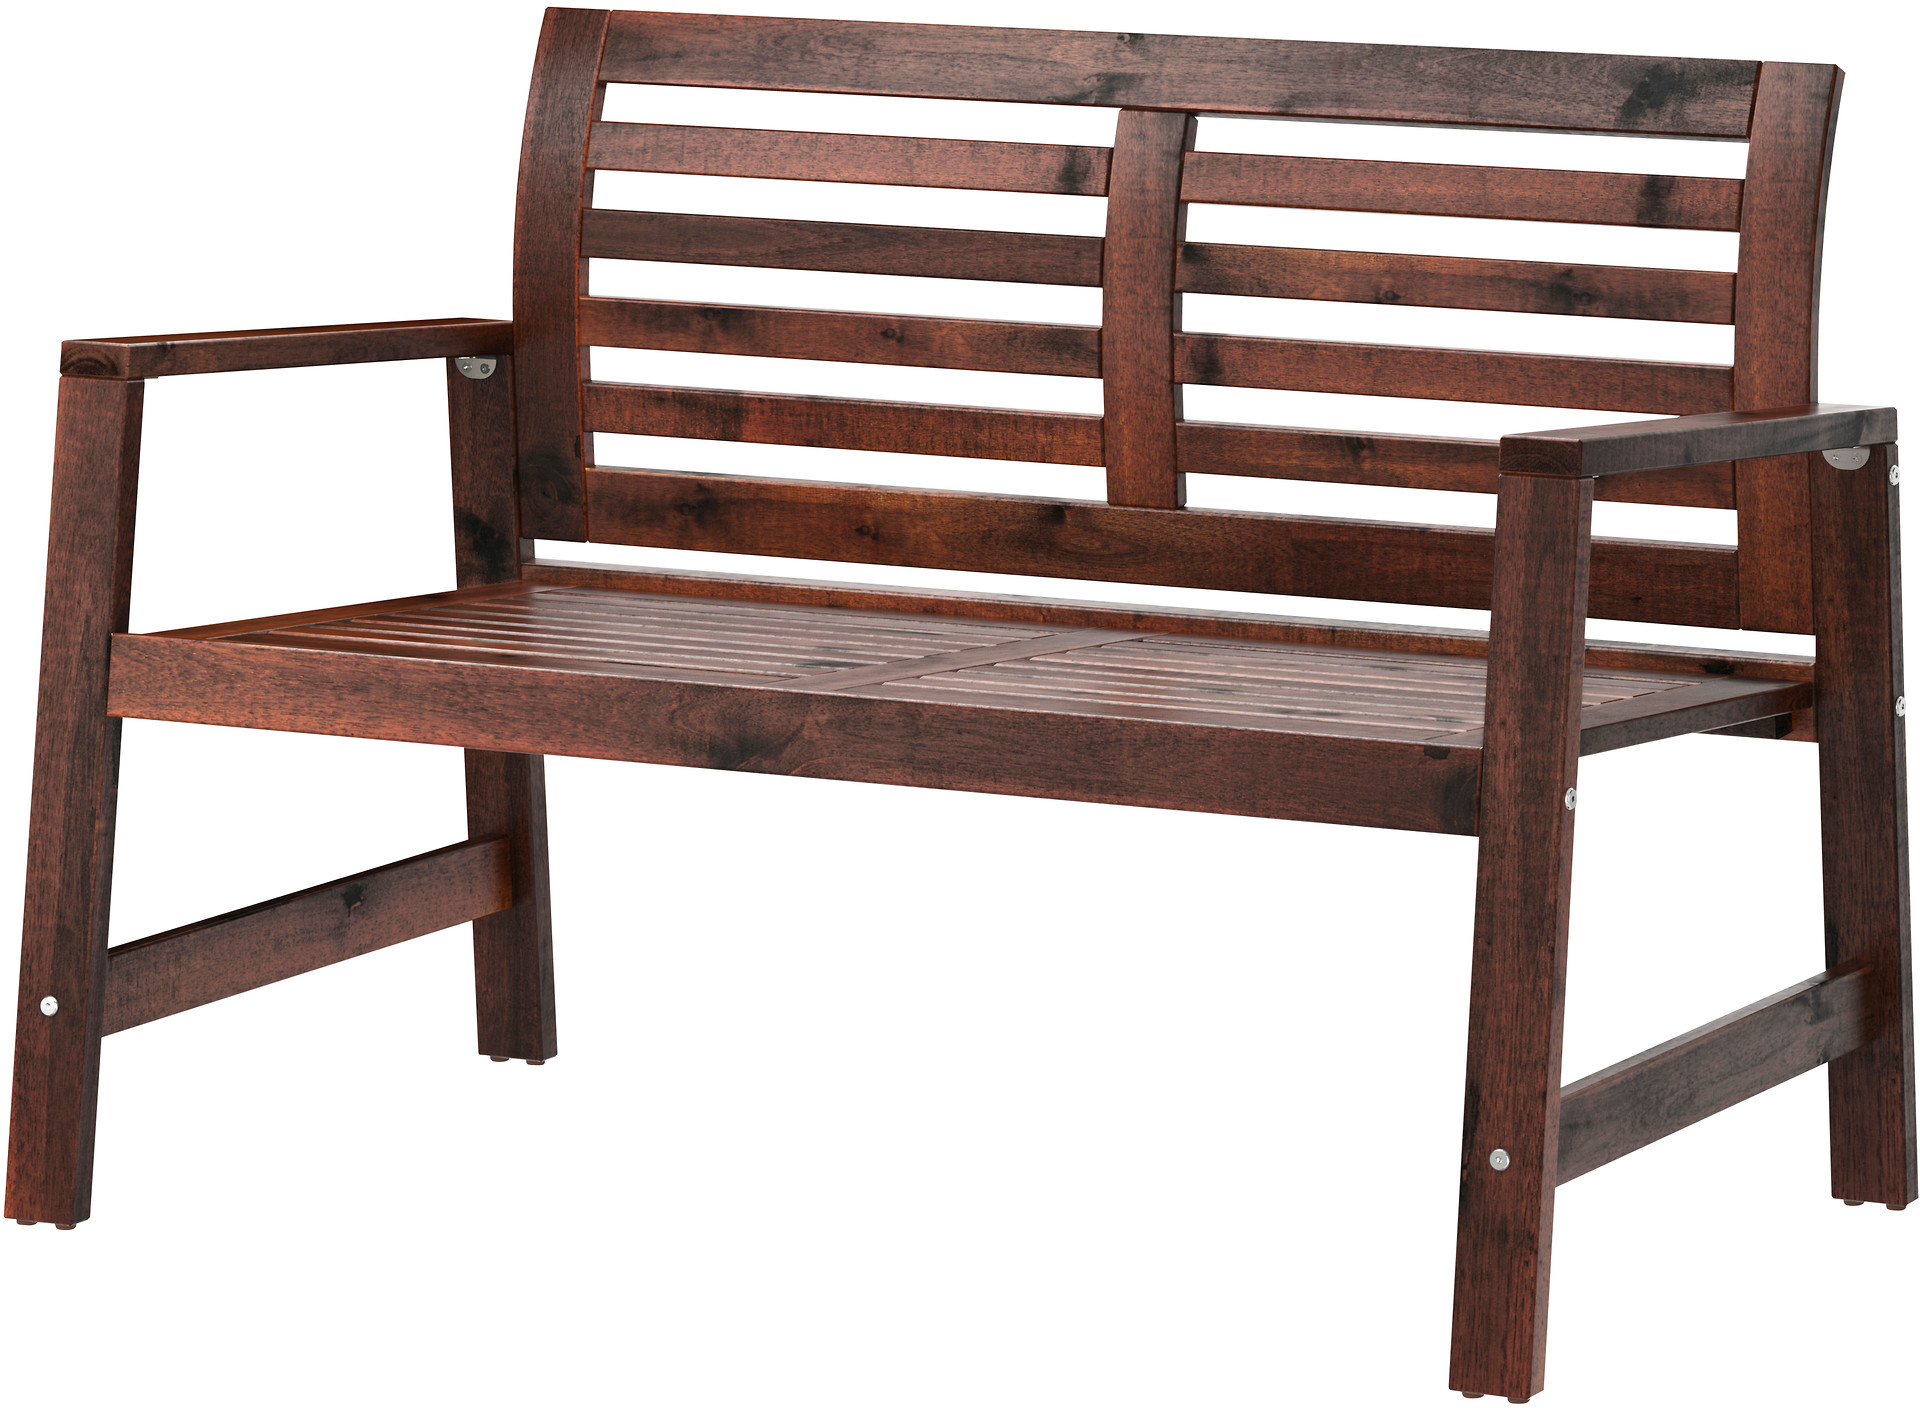 ÄPPLARÖ Bench with backrest, outdoor - brown stained, - IKEA